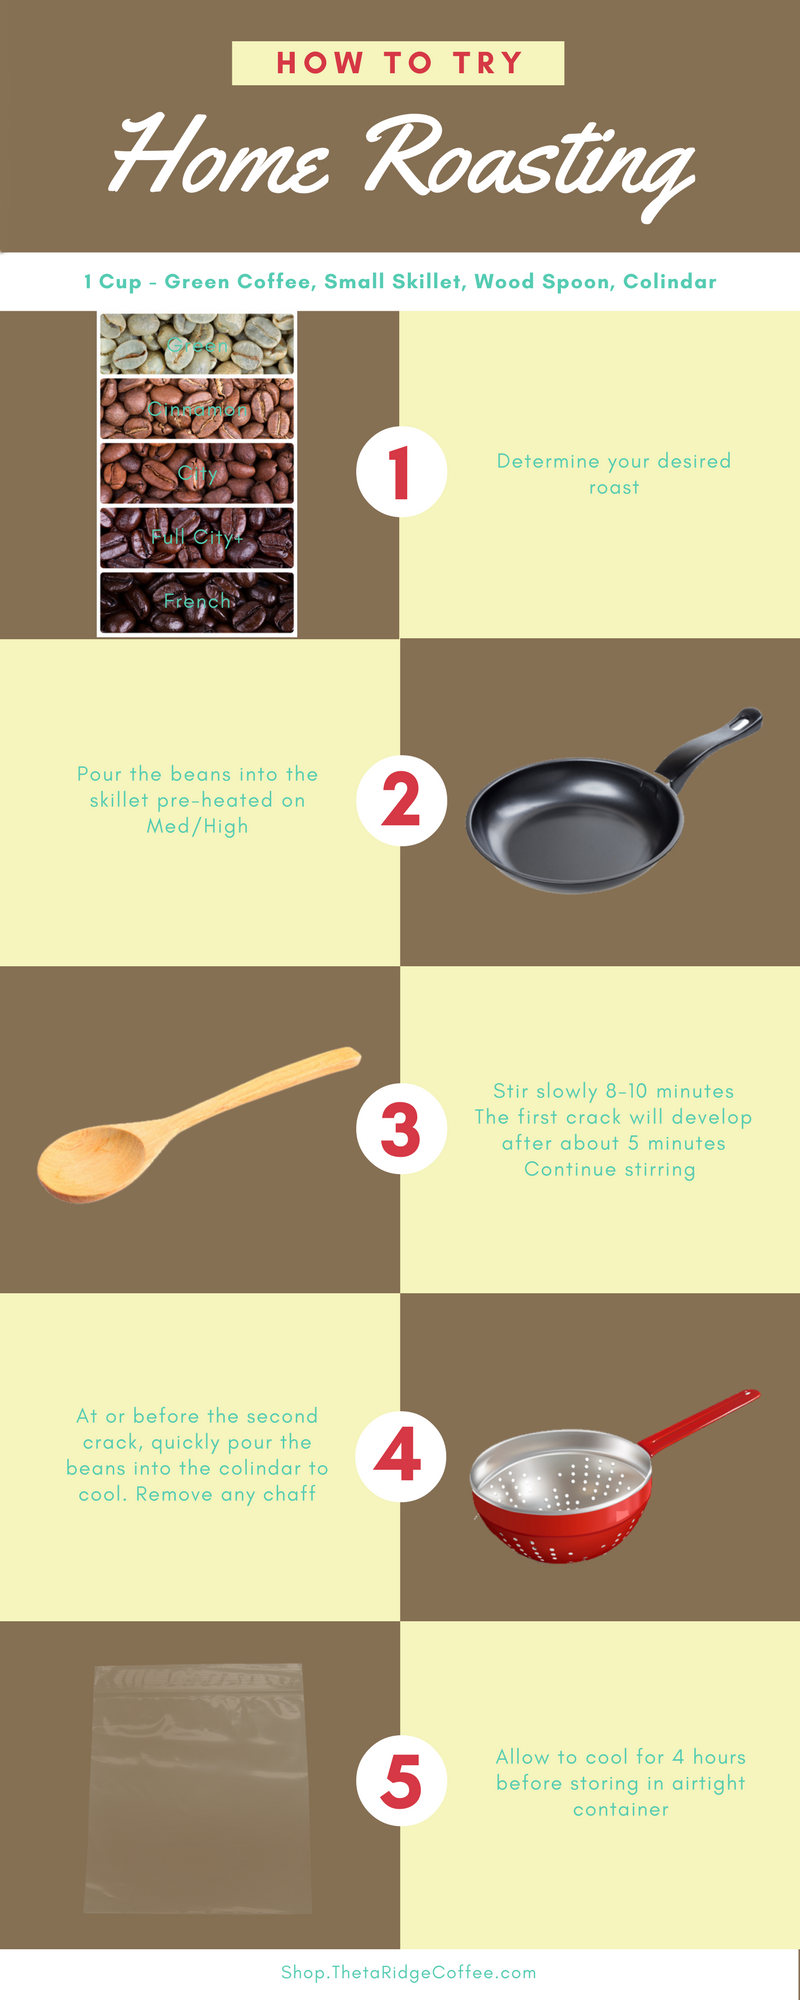 Easy steps to home roasting coffee beans